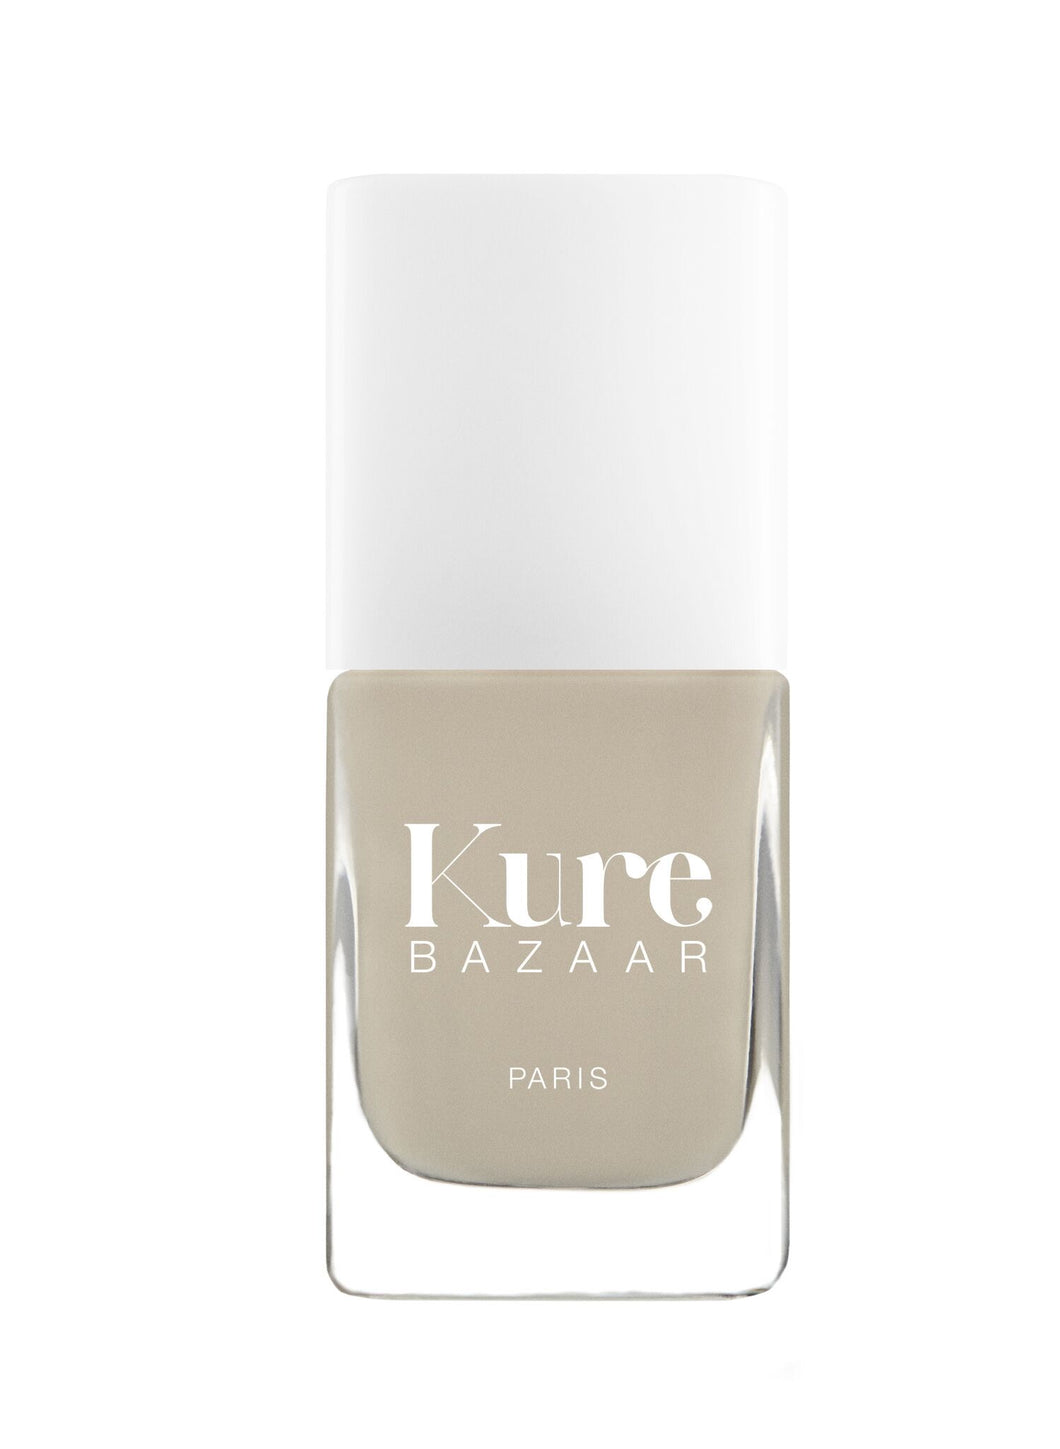 KURE BAZAAR Nail Lacquer in Nude 10ml